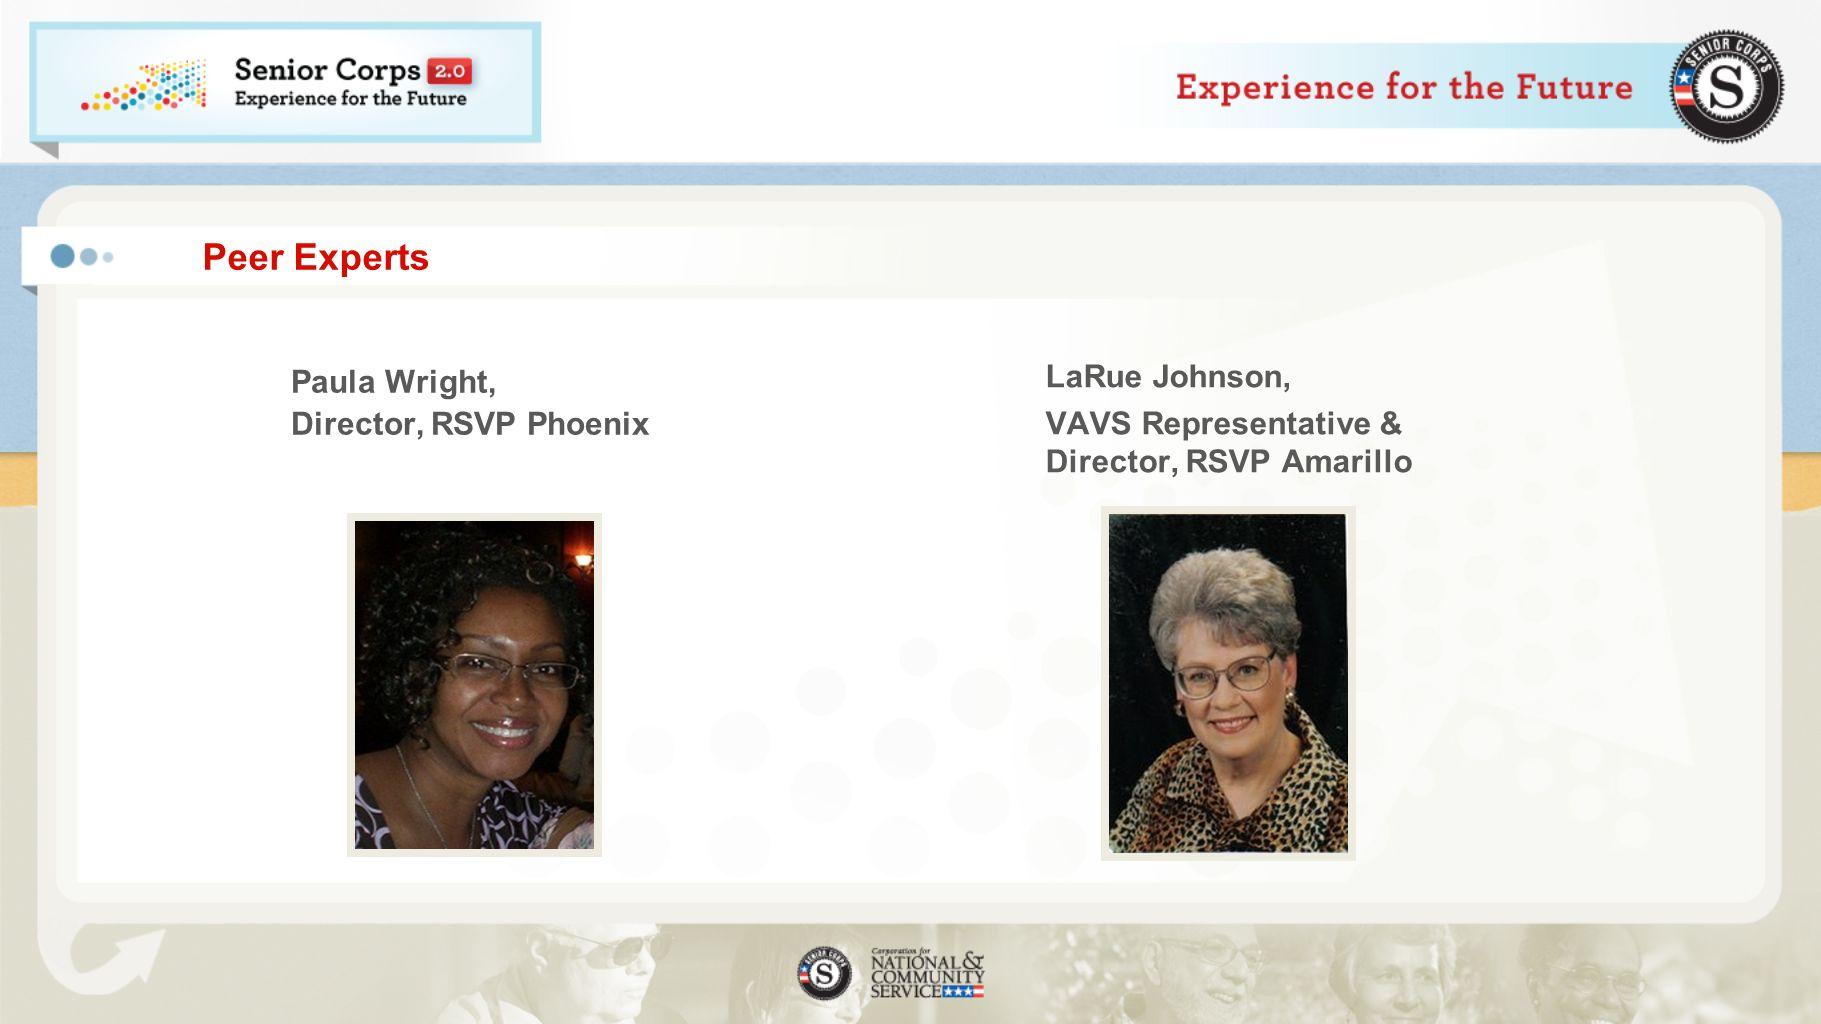 Peer Experts Paula Wright, Director, RSVP Phoenix LaRue Johnson, VAVS Representative & Director, RSVP Amarillo